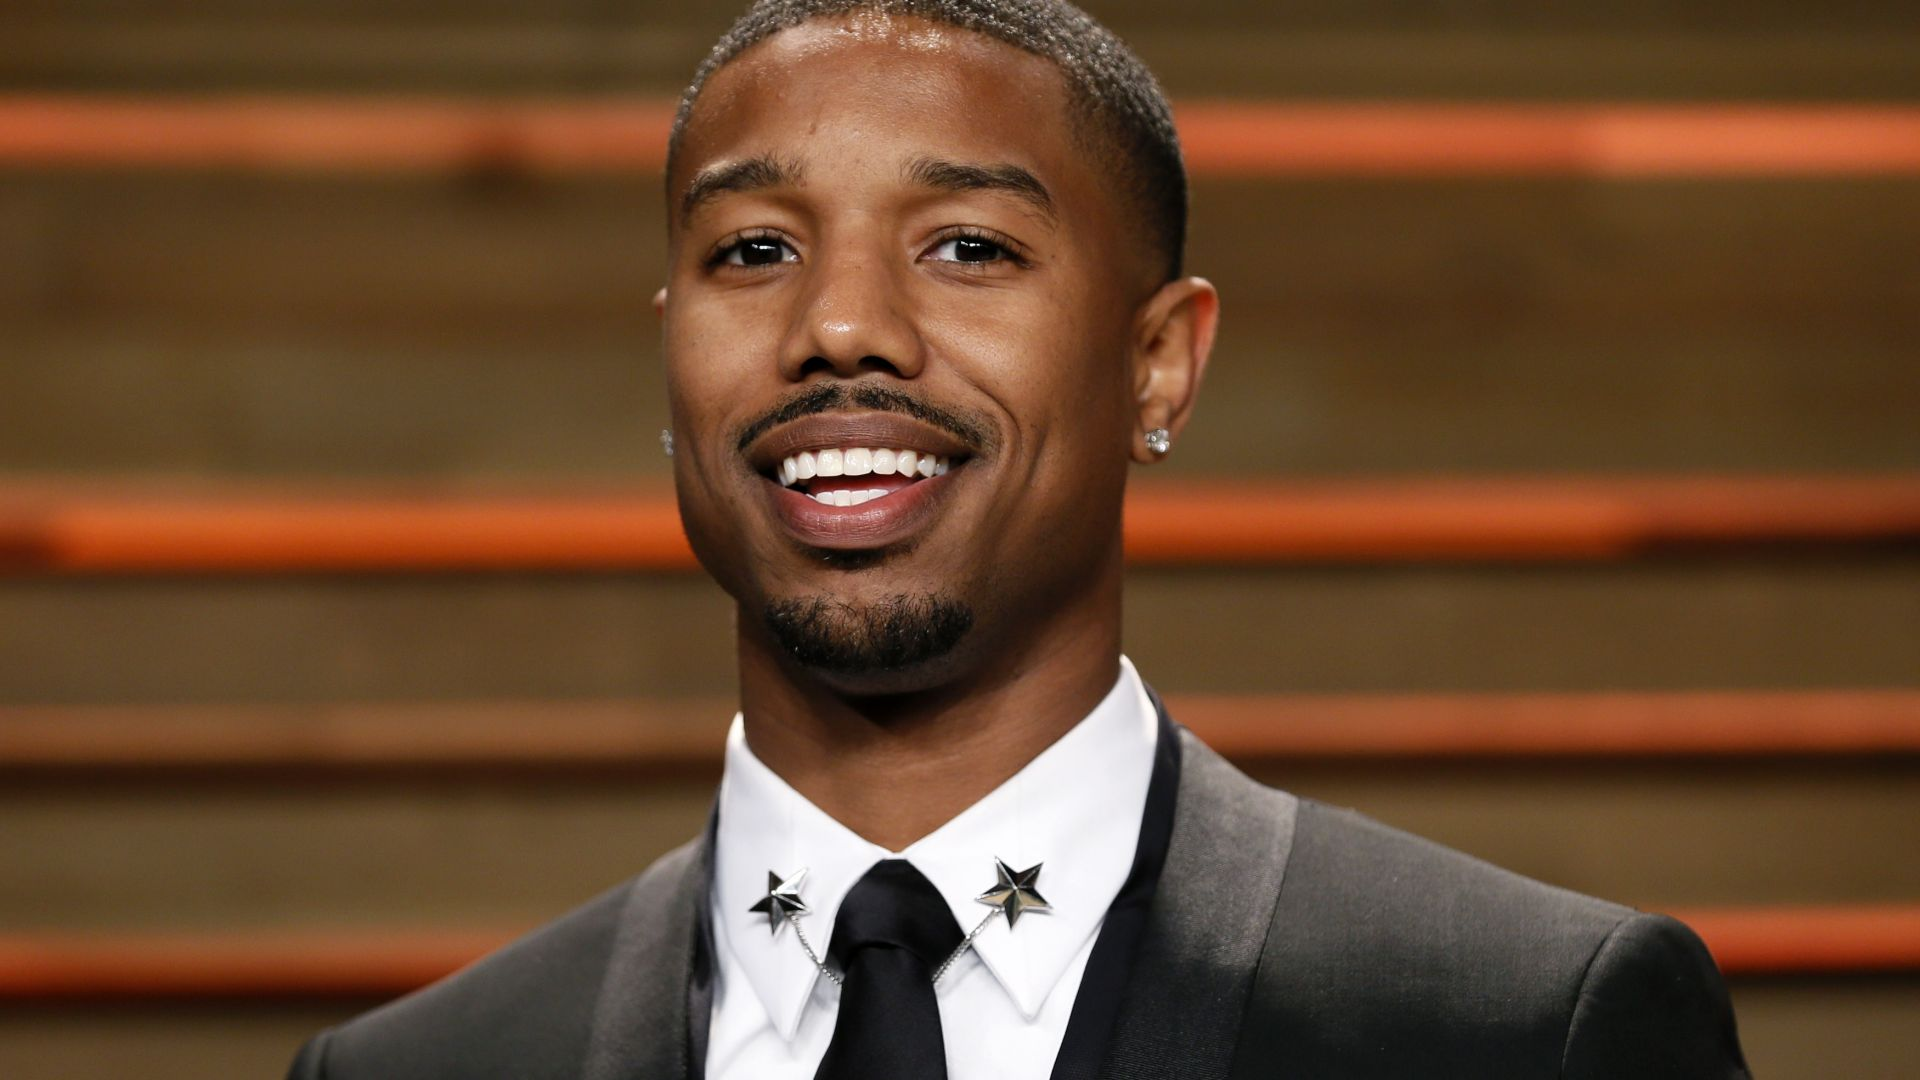 Michael B. Jordan, 4k, photo (horizontal)